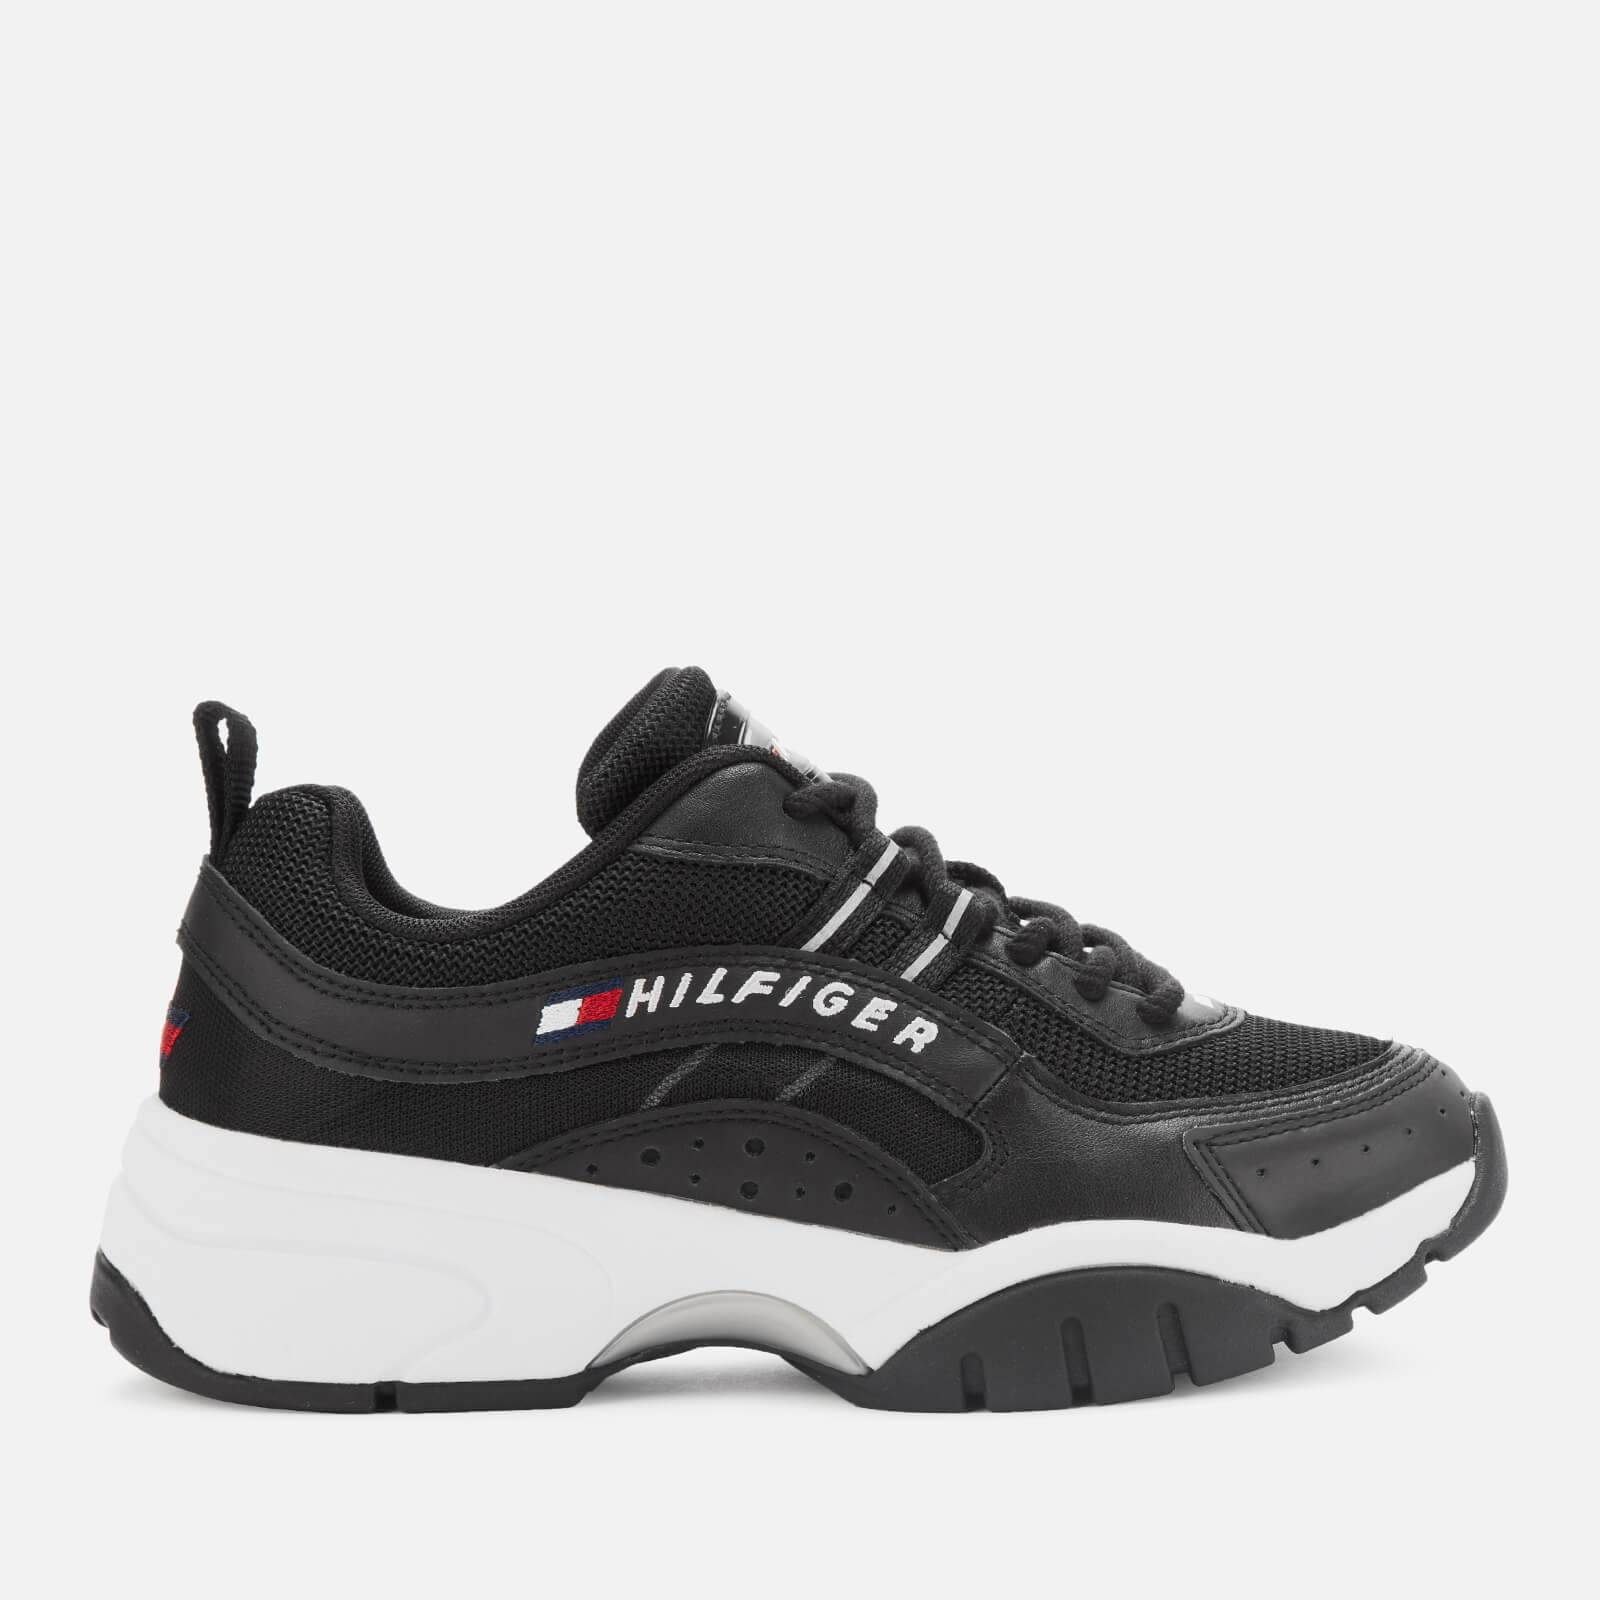 Tommy Jeans Women's Heritage Tommy Jeans Running Style Trainers - Black - EU 39/UK 6